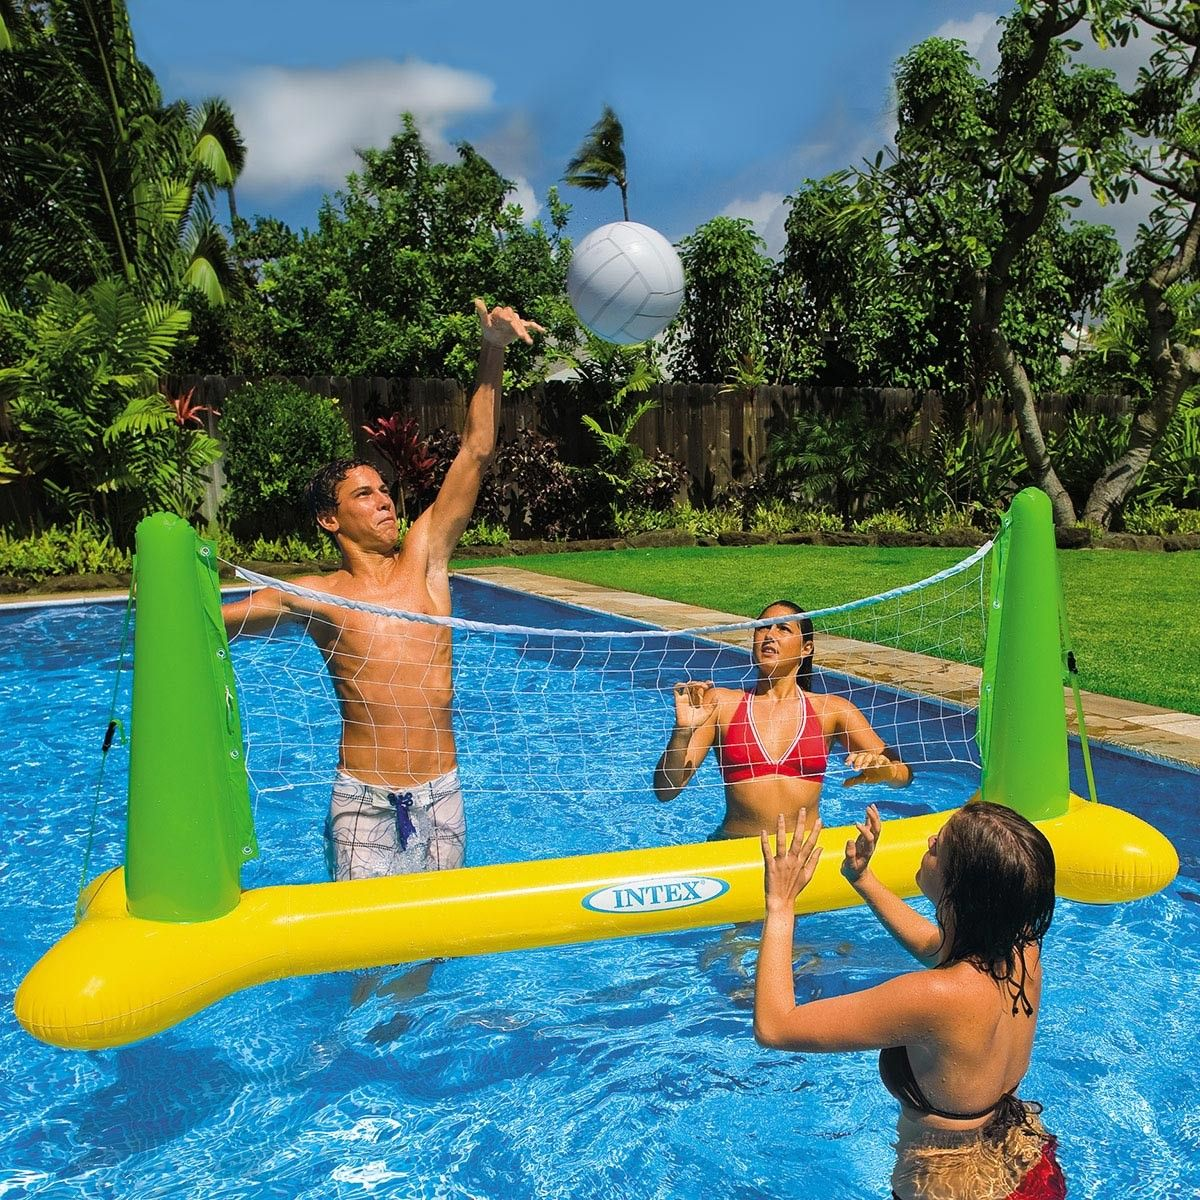 Intex Inflatable Pool Volleyball With Images Swimming Pool Accessories Swimming Pool Games